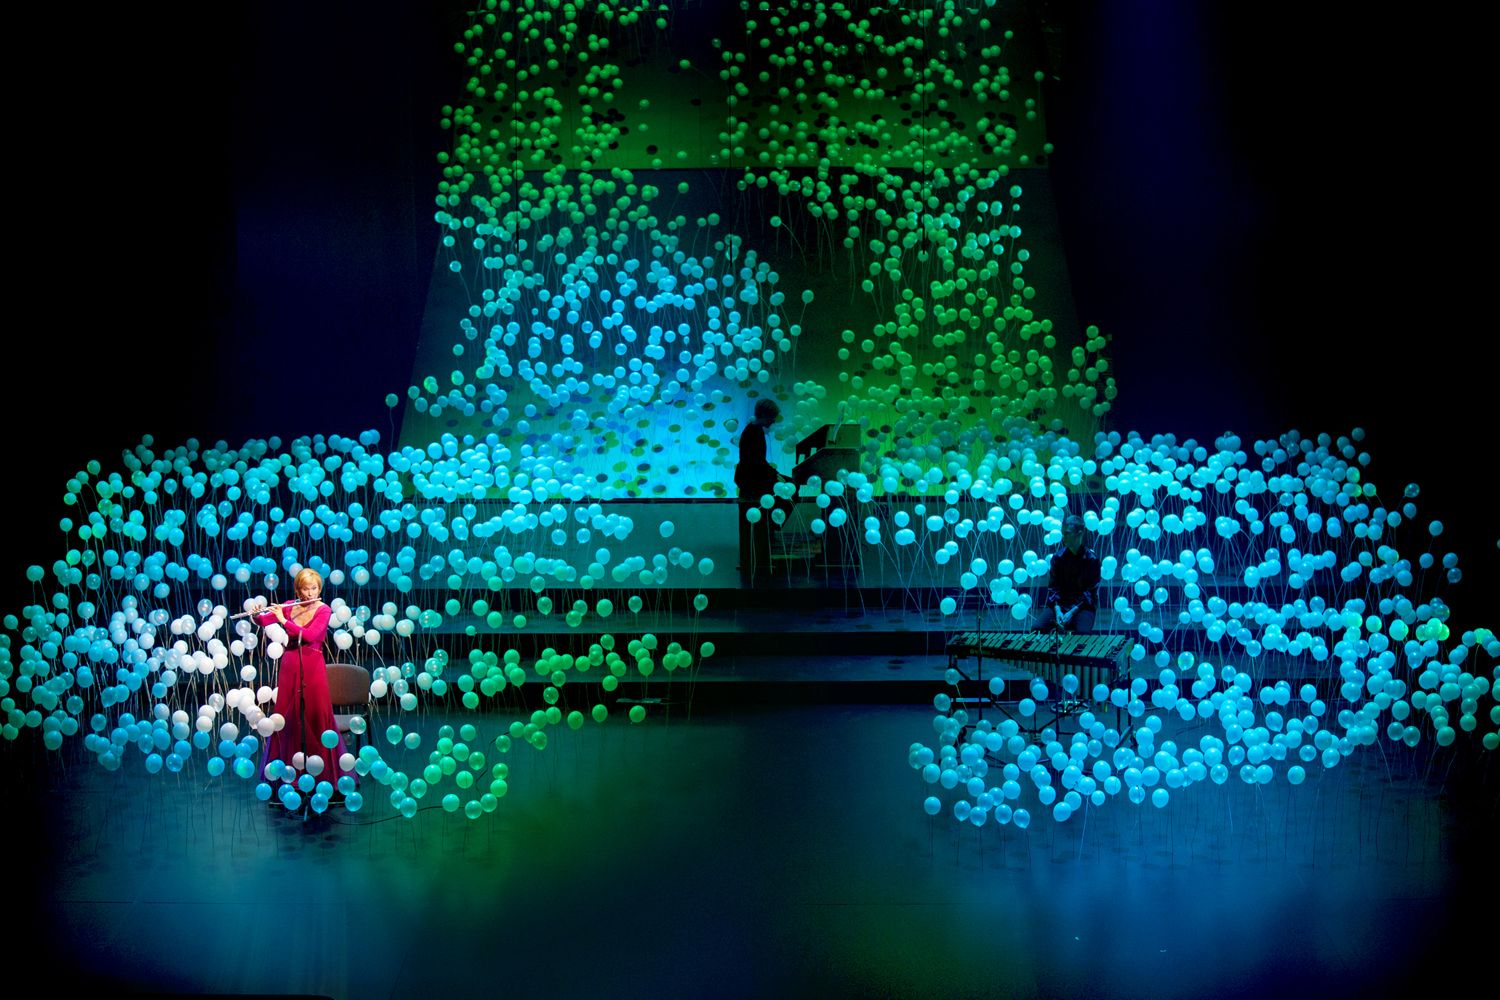 Scenography for the Grand Music Award 2014 ceremony is designed as an art installation that together with light and video projections creates overall playful atmosphere of the event. Musicians are integrated in artificial landscape of illusory depth.